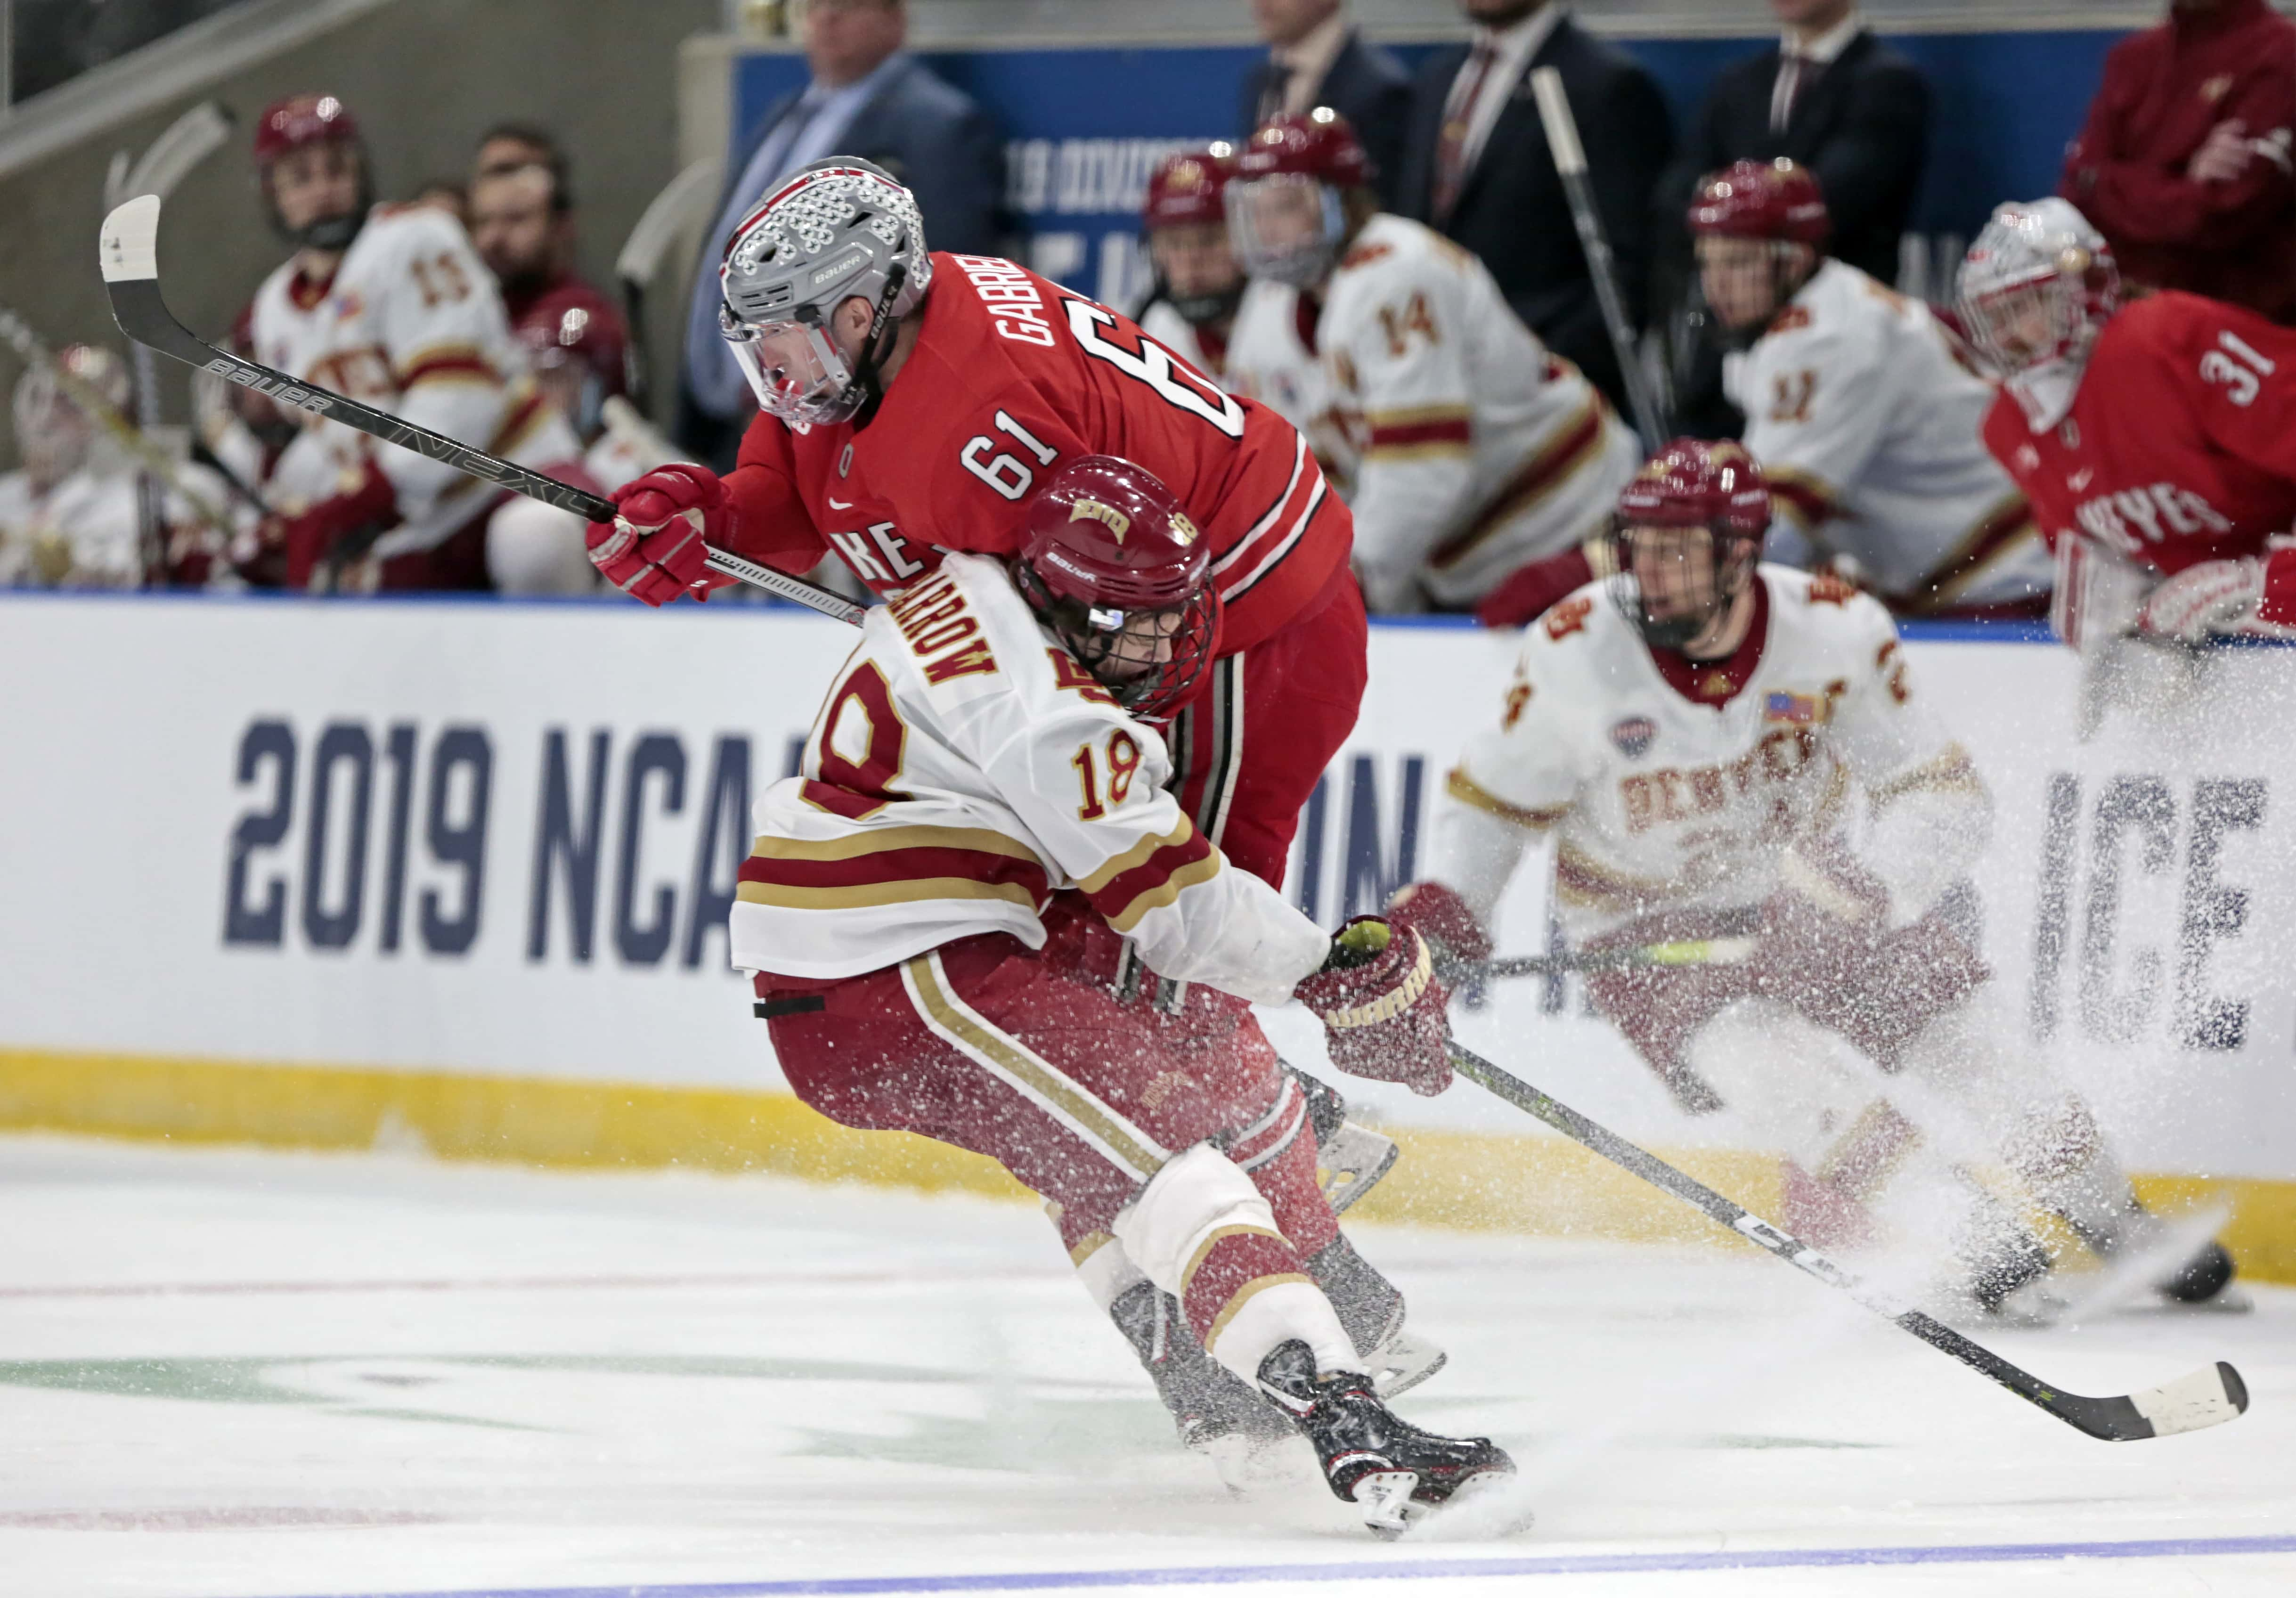 Denver Pioneers | The Rink Live - Part 2